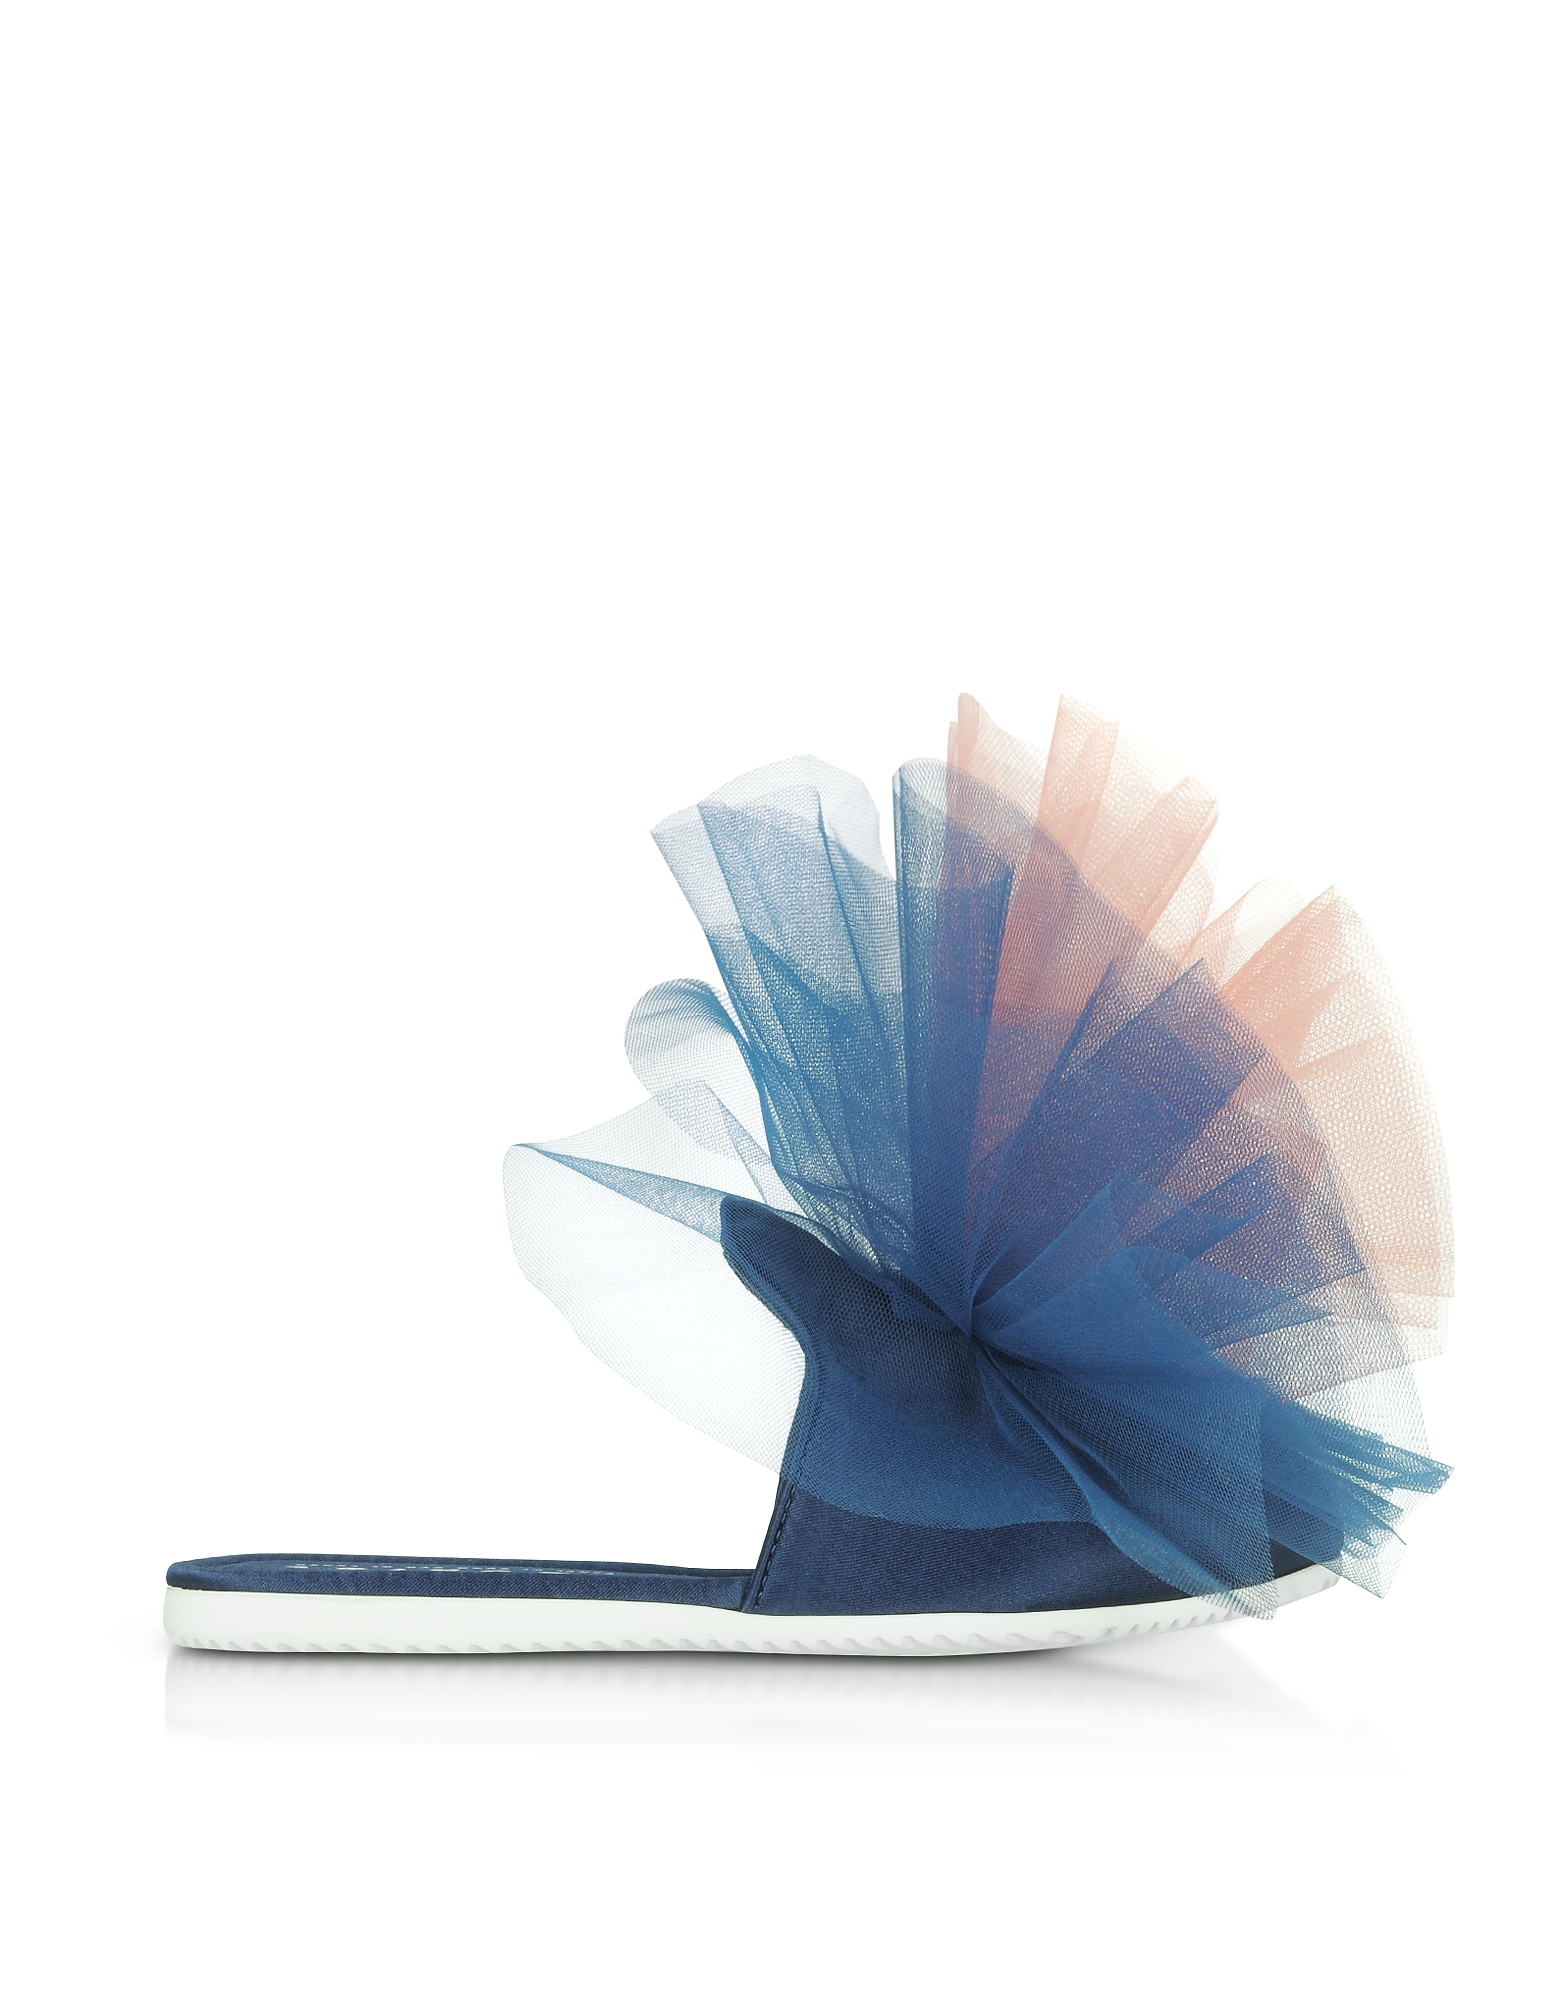 Joshua Sanders Shoes, Blue and Pink Tulle Mule